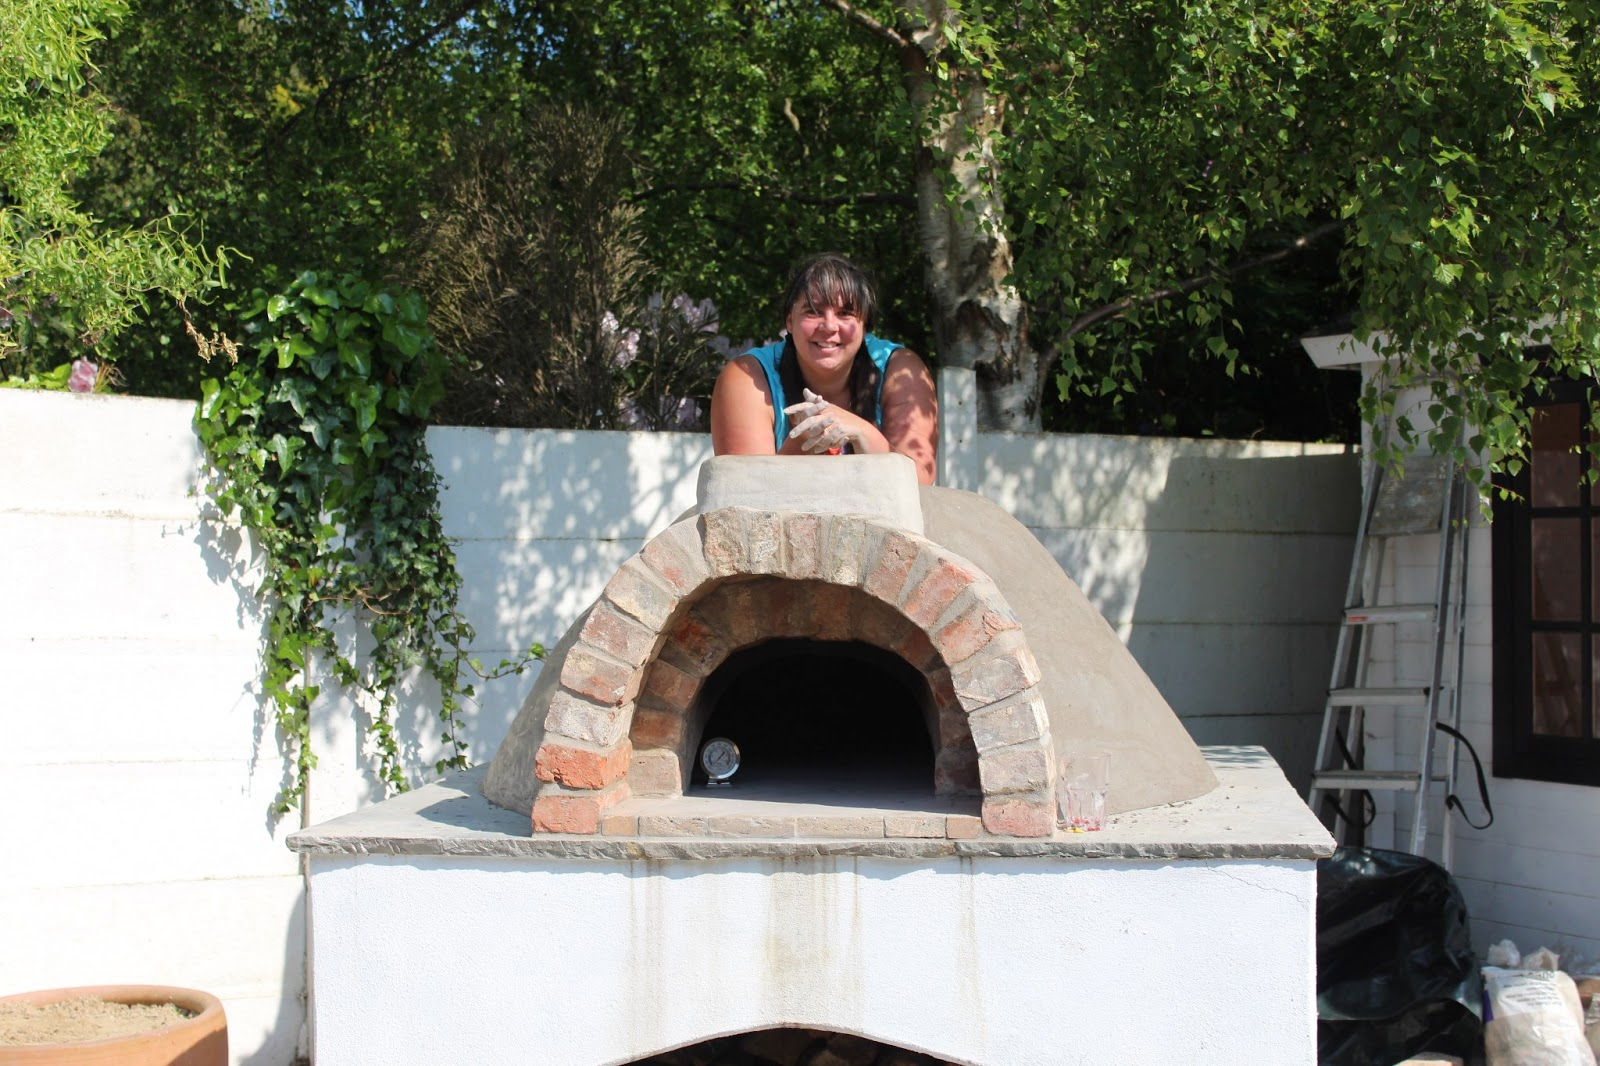 Homemade wooden meat smoker youtube - Garden Design With Flower Pot Kitchen Clay Oven Building Your Wood Fired Pizza Oven With